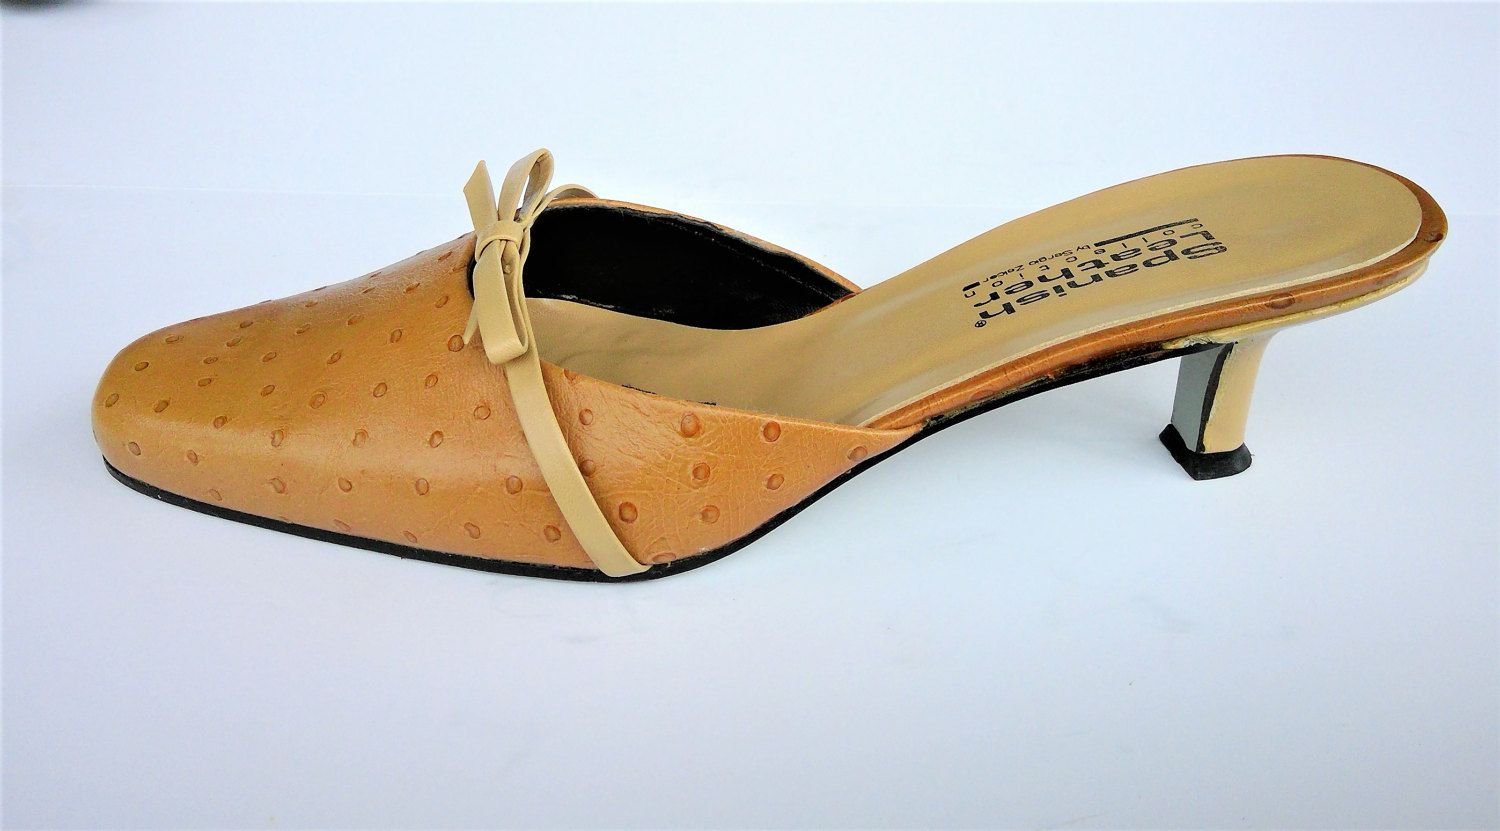 67d1e1a753d5 Vintage Designer Sergio Zelcer Spanish Leather Collection Mules - Size 8  1 2 - Made In Spain by CircaPasse on Etsy